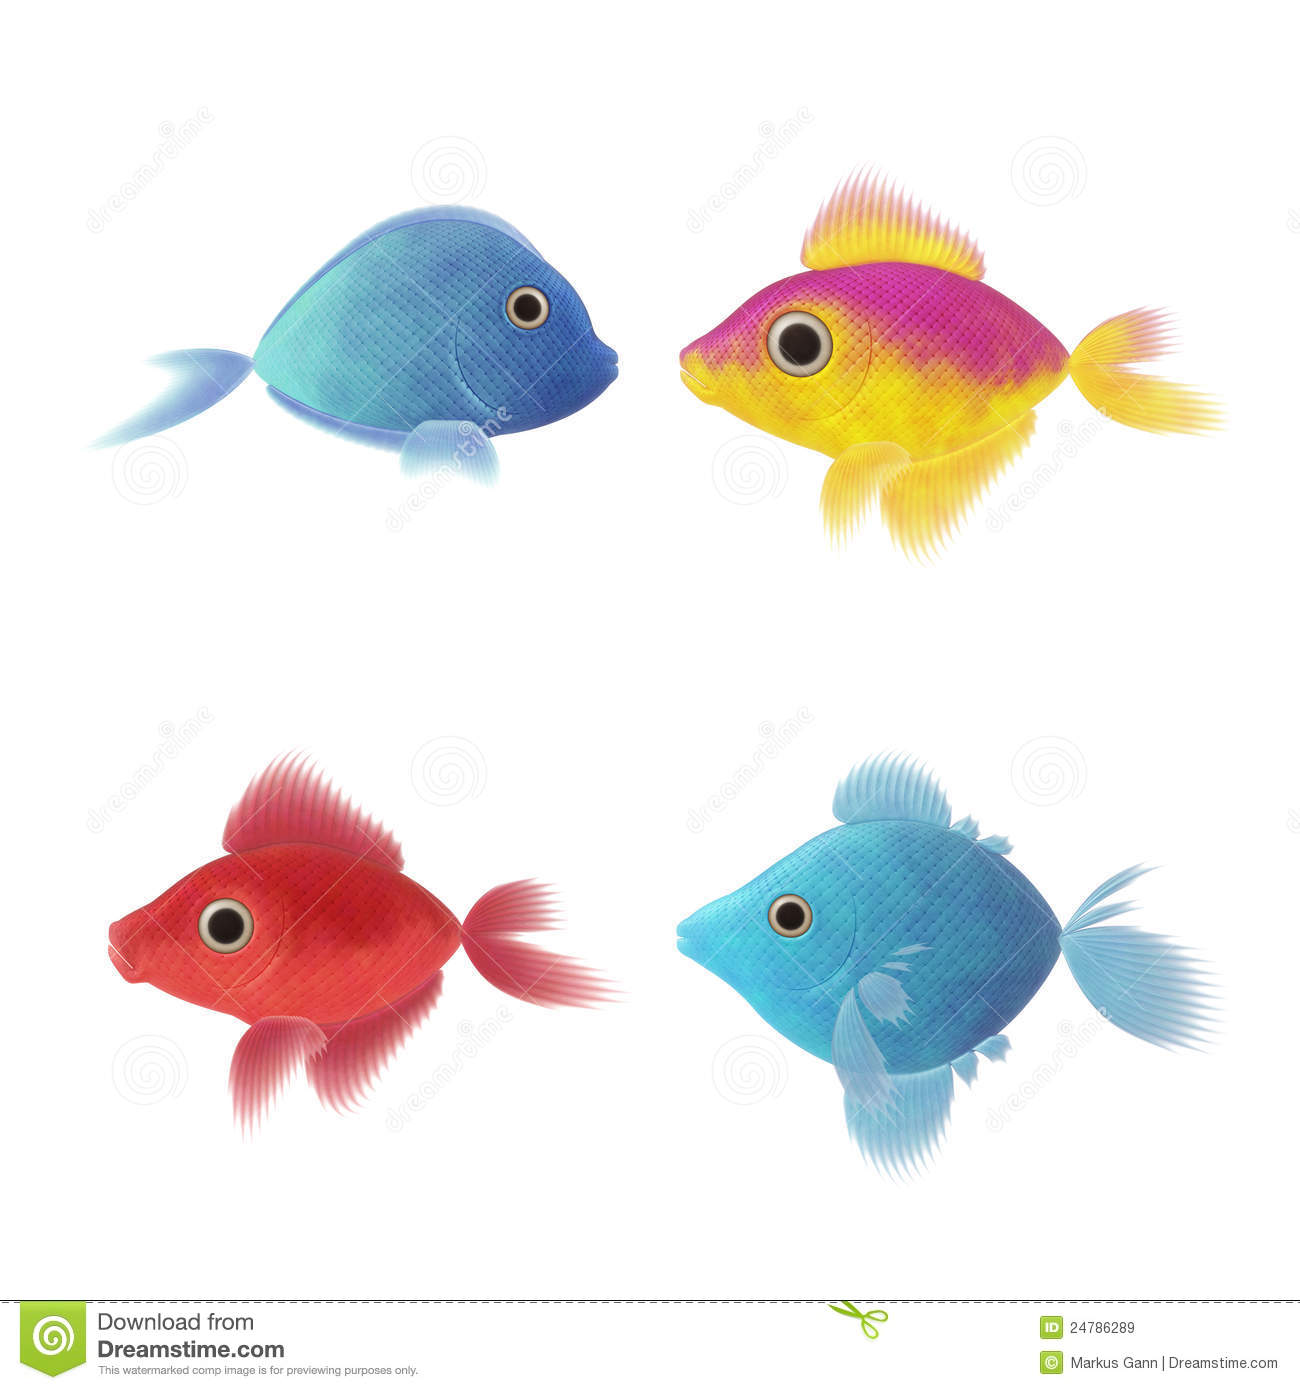 Colorful Animal Print Wallpaper Four Fish Illustrations Royalty Free Stock Images Image